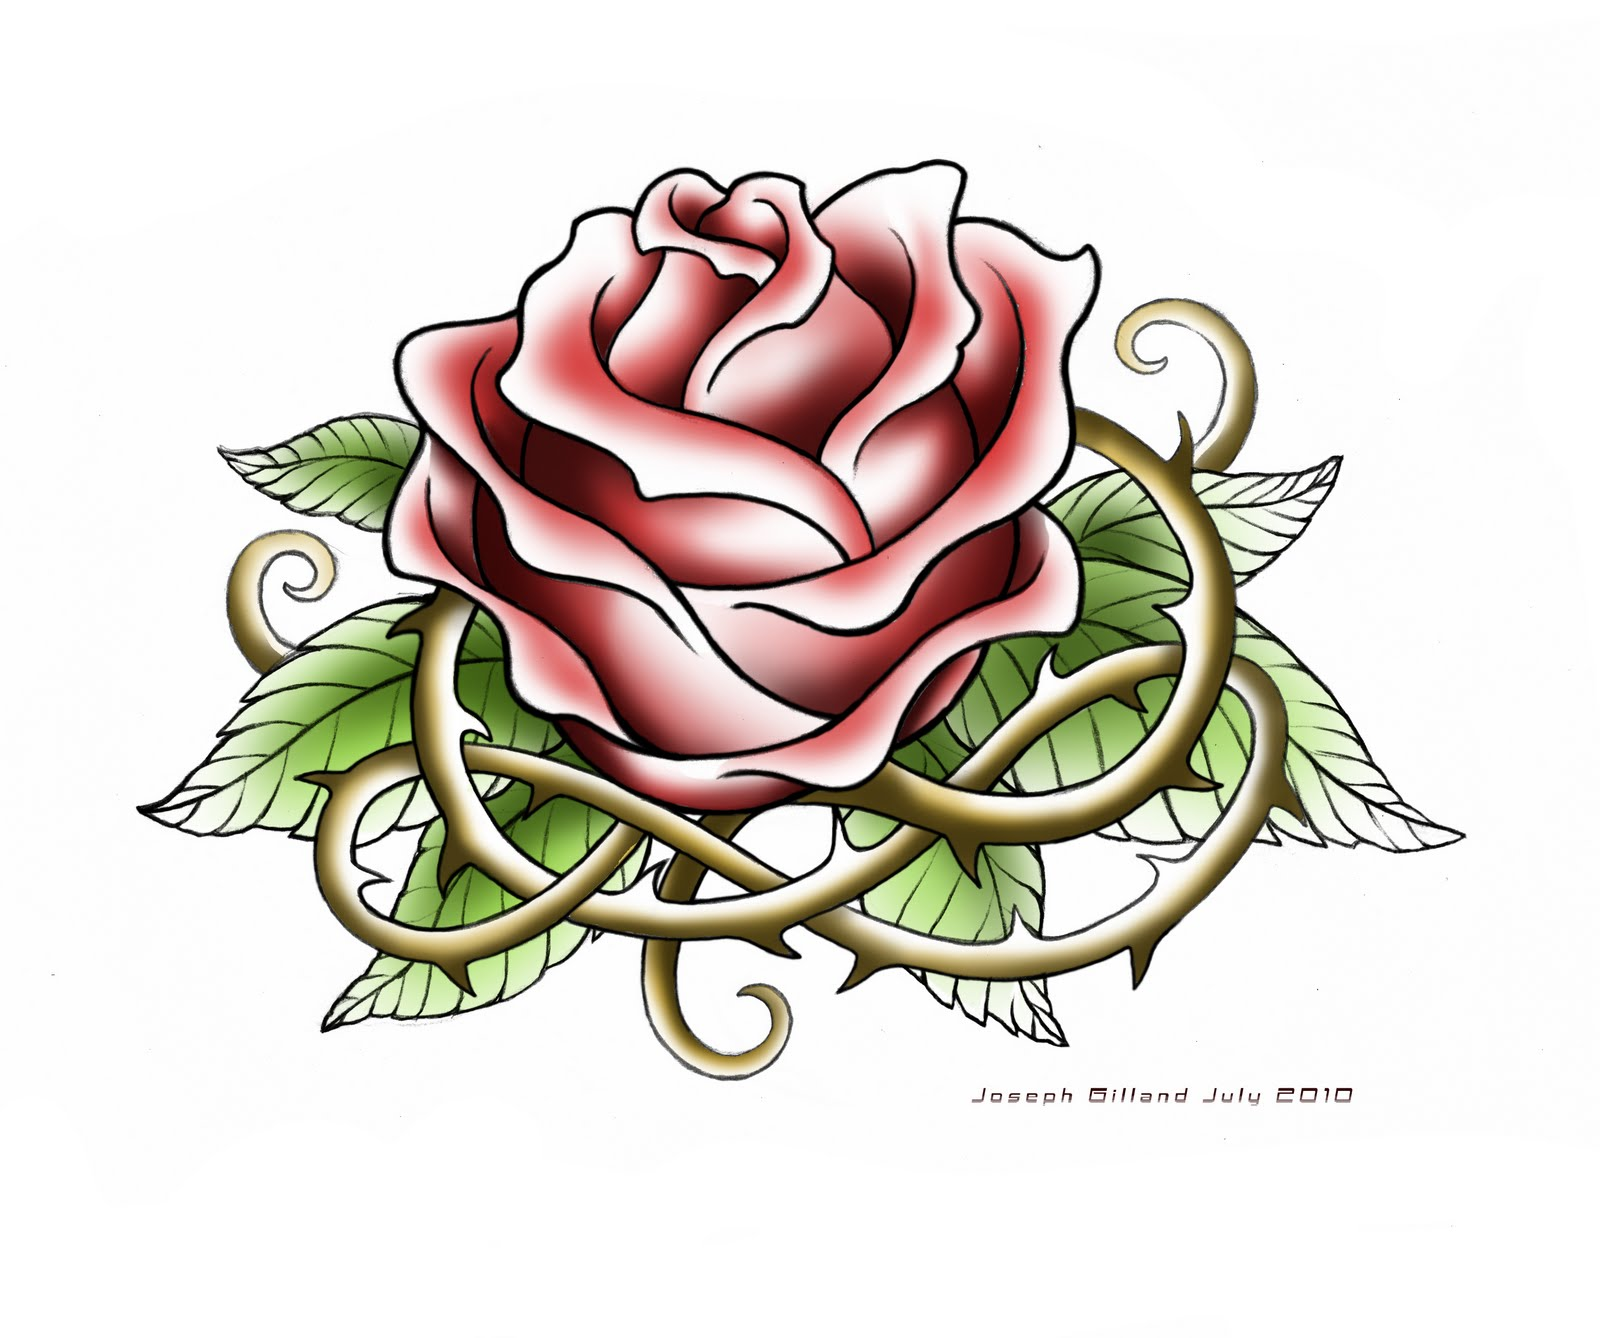 Tattoo Ideas With Roses: Gudu Ngiseng Blog: July 2014